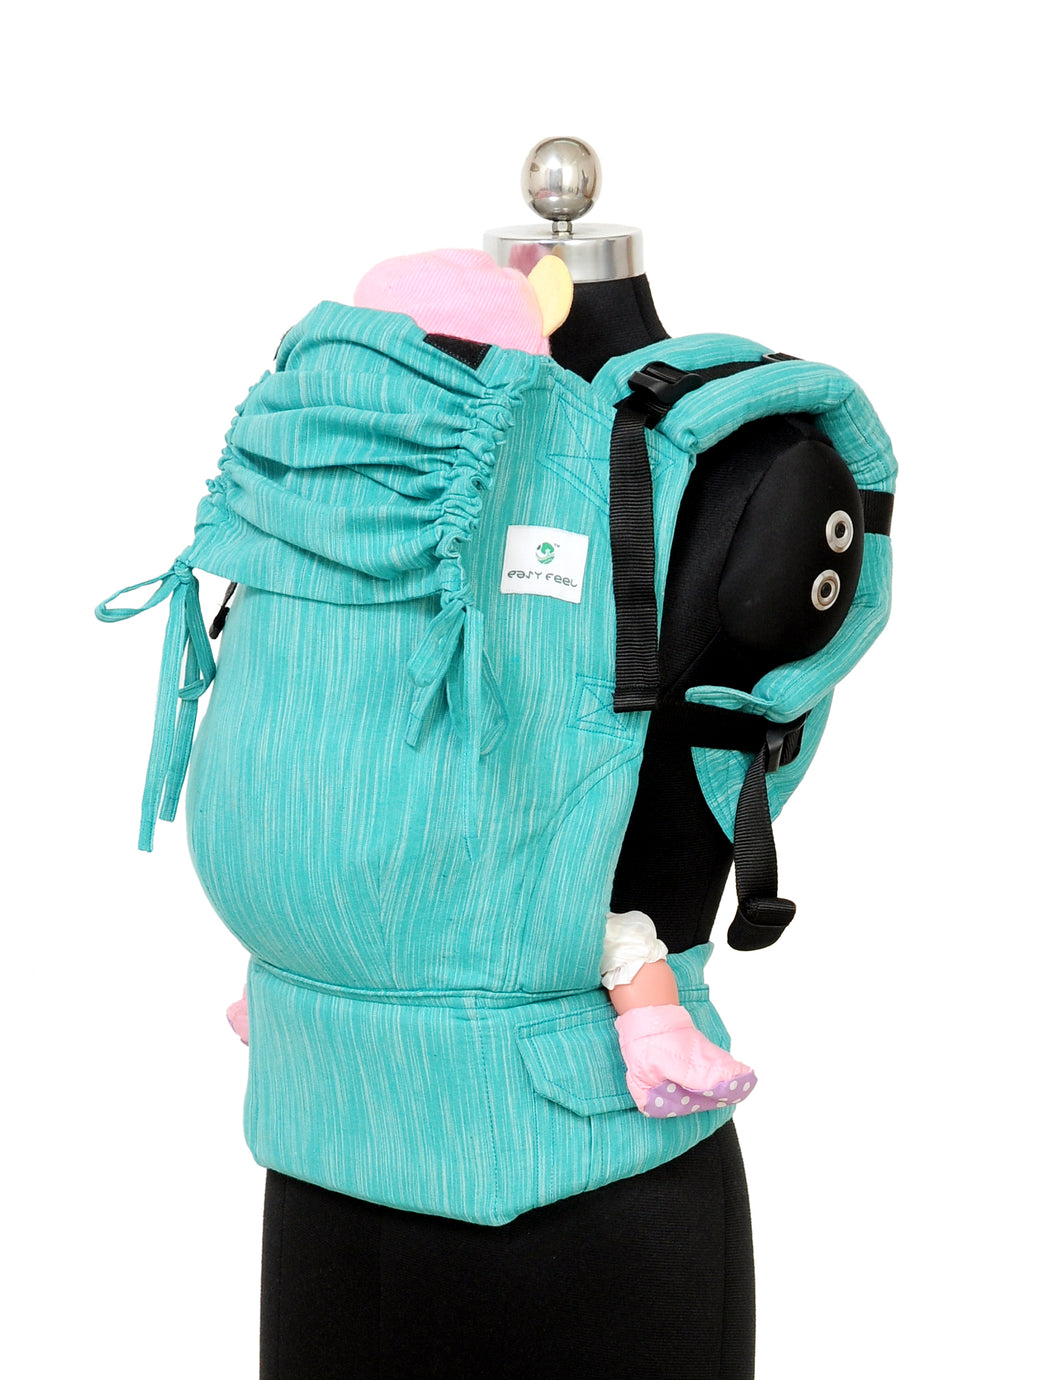 Toddler Soft Structured Carrier - Sky